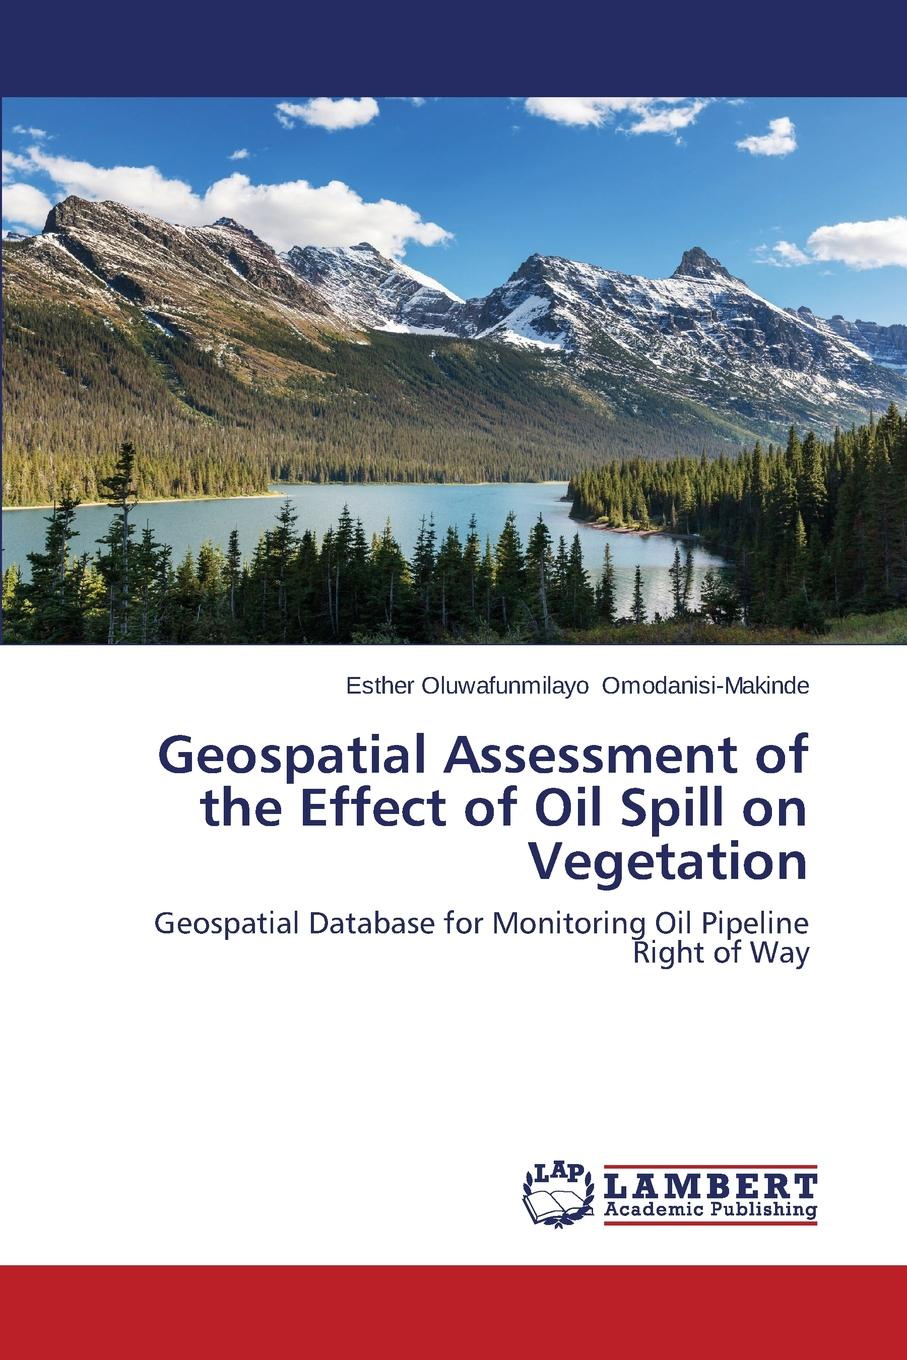 Omodanisi-Makinde Esther Oluwafunmilayo Geospatial Assessment of the Effect of Oil Spill on Vegetation heavy metal induced effects in some selected higher and lower plants